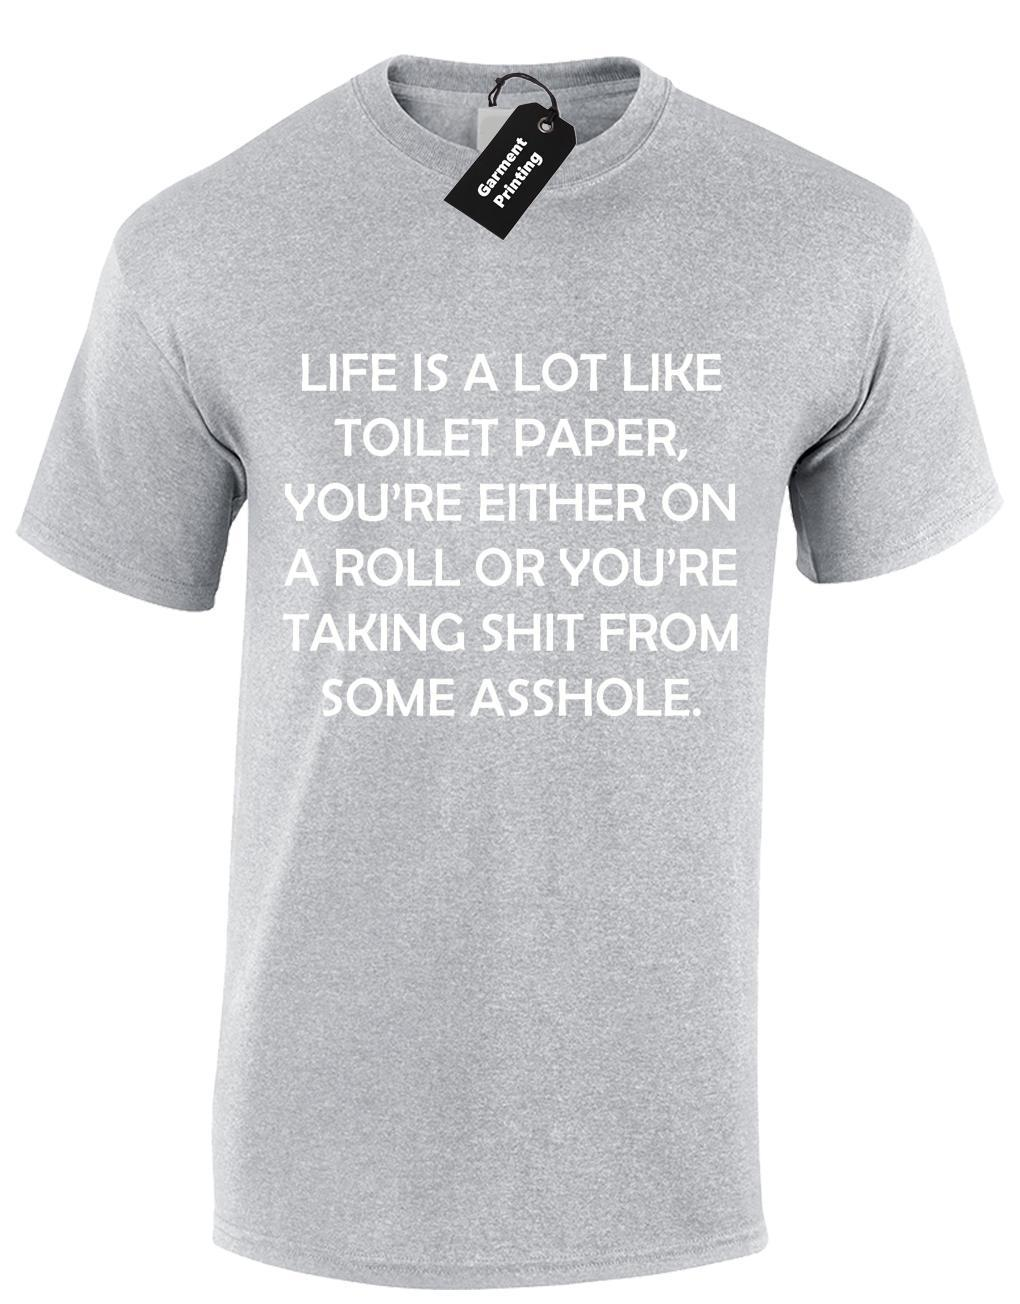 2ad562d6 LIFE IS A LIKE TOILET PAPER MENS T SHIRT FUNNY RUDE SLOGAN JOKE HUMOUR S 5XL  Long Sleeve Tee Shirts Design Your Own T Shirts From Amesion97, $12.08|  DHgate.